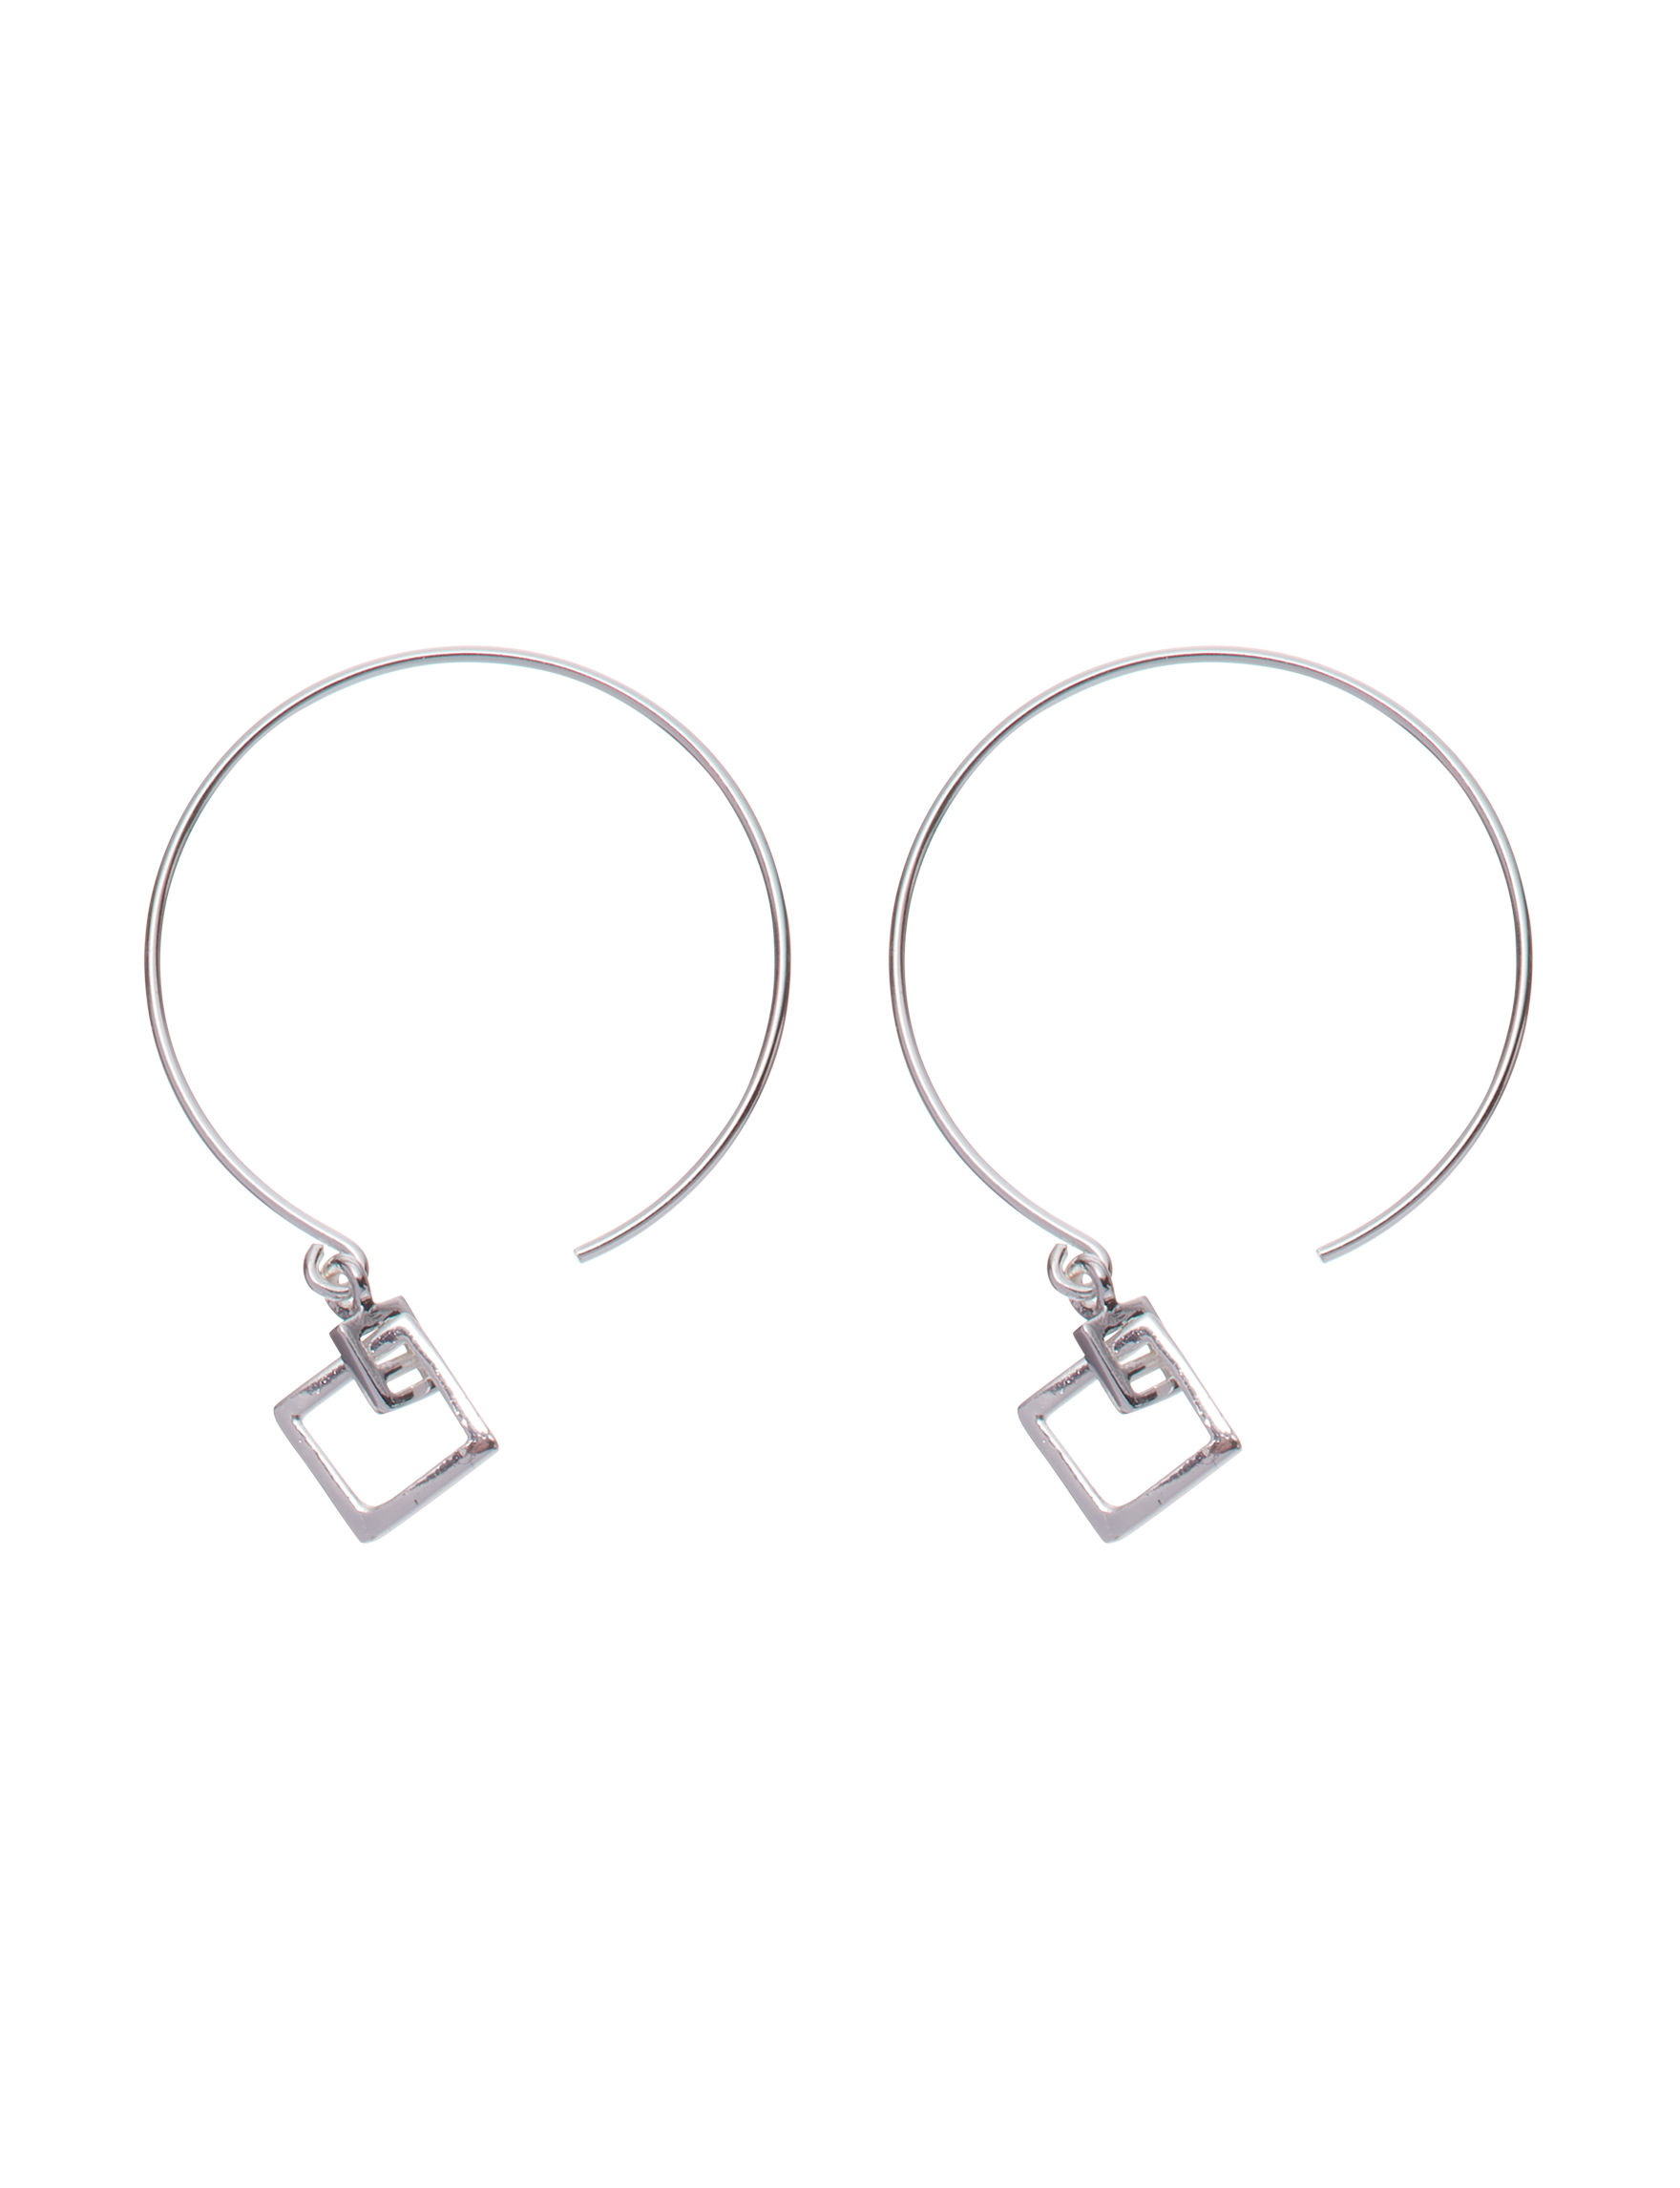 Marsala Silver Hoops Earrings Fine Jewelry